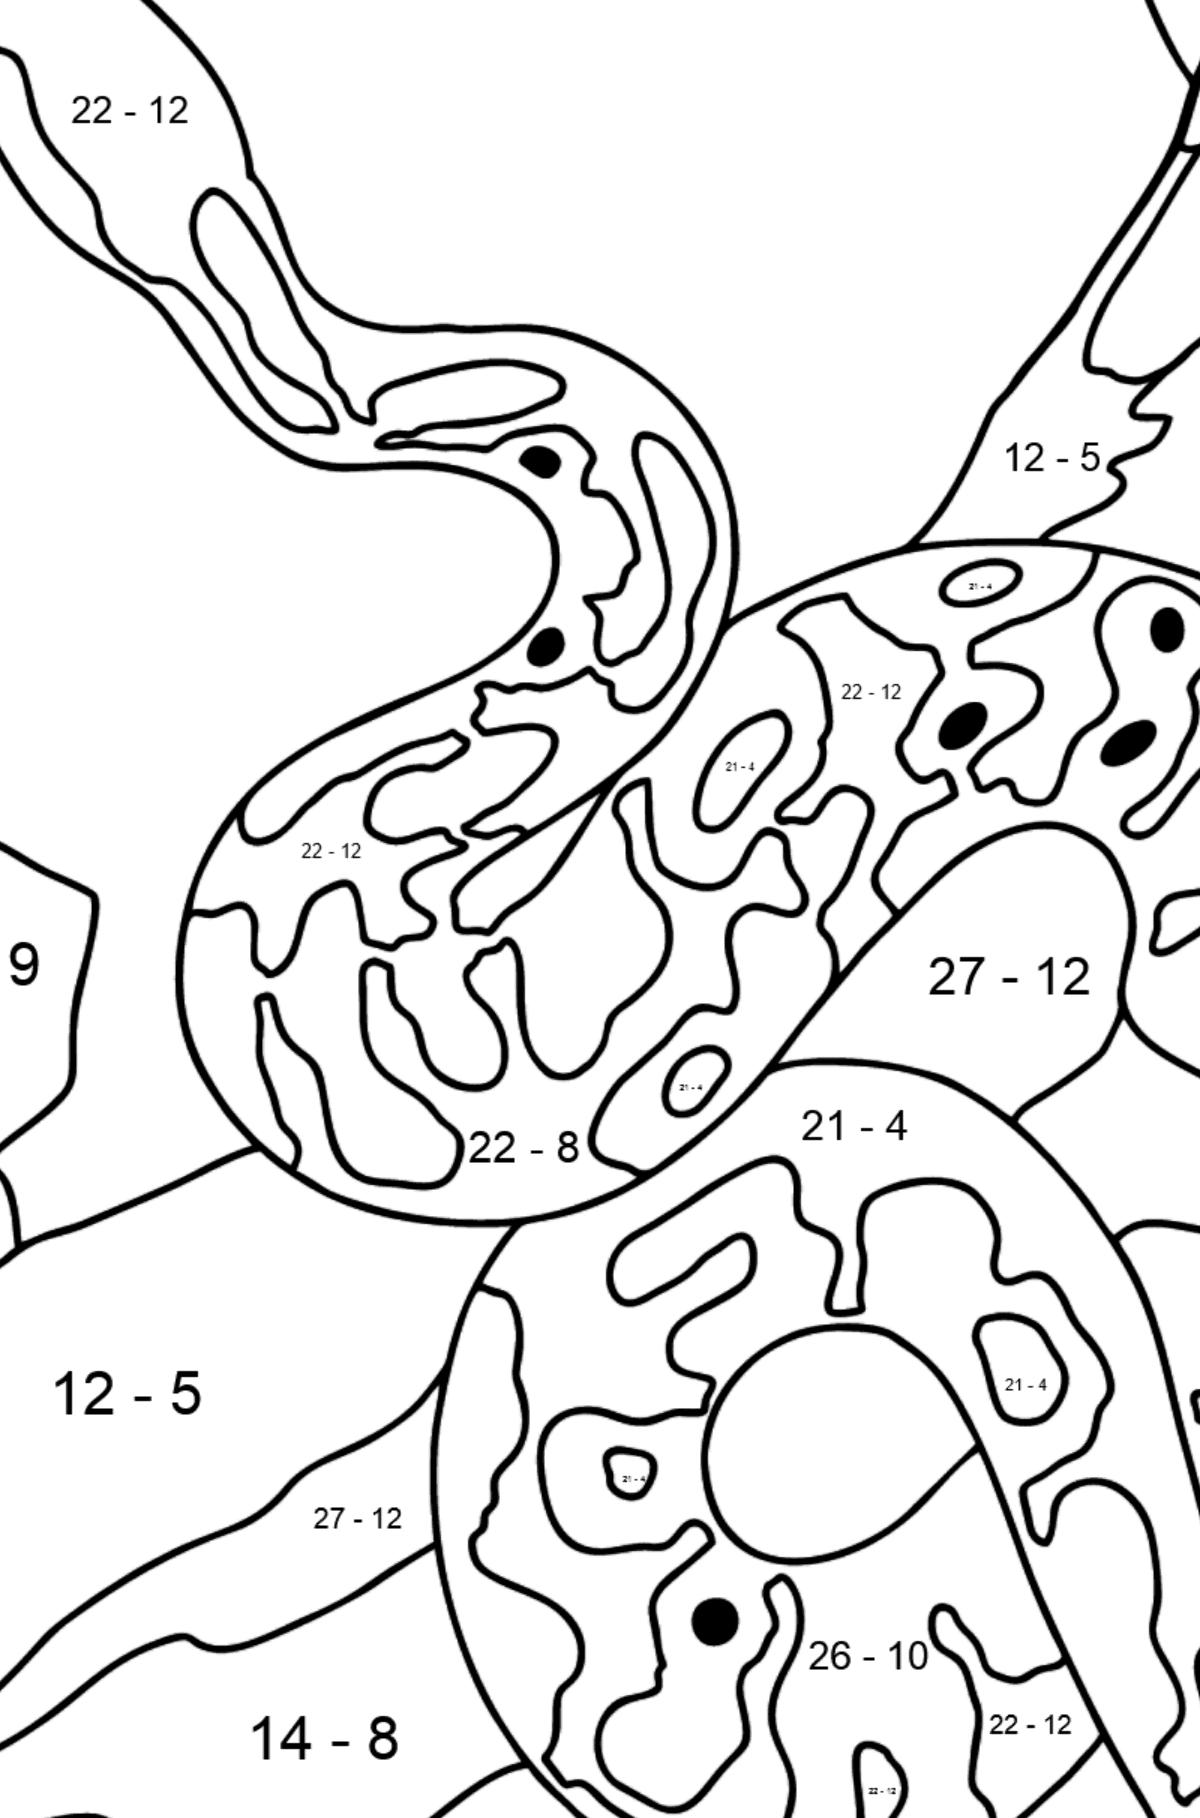 A Snake is Preparing for a Hunt Coloring Page - Math Coloring - Subtraction for Kids